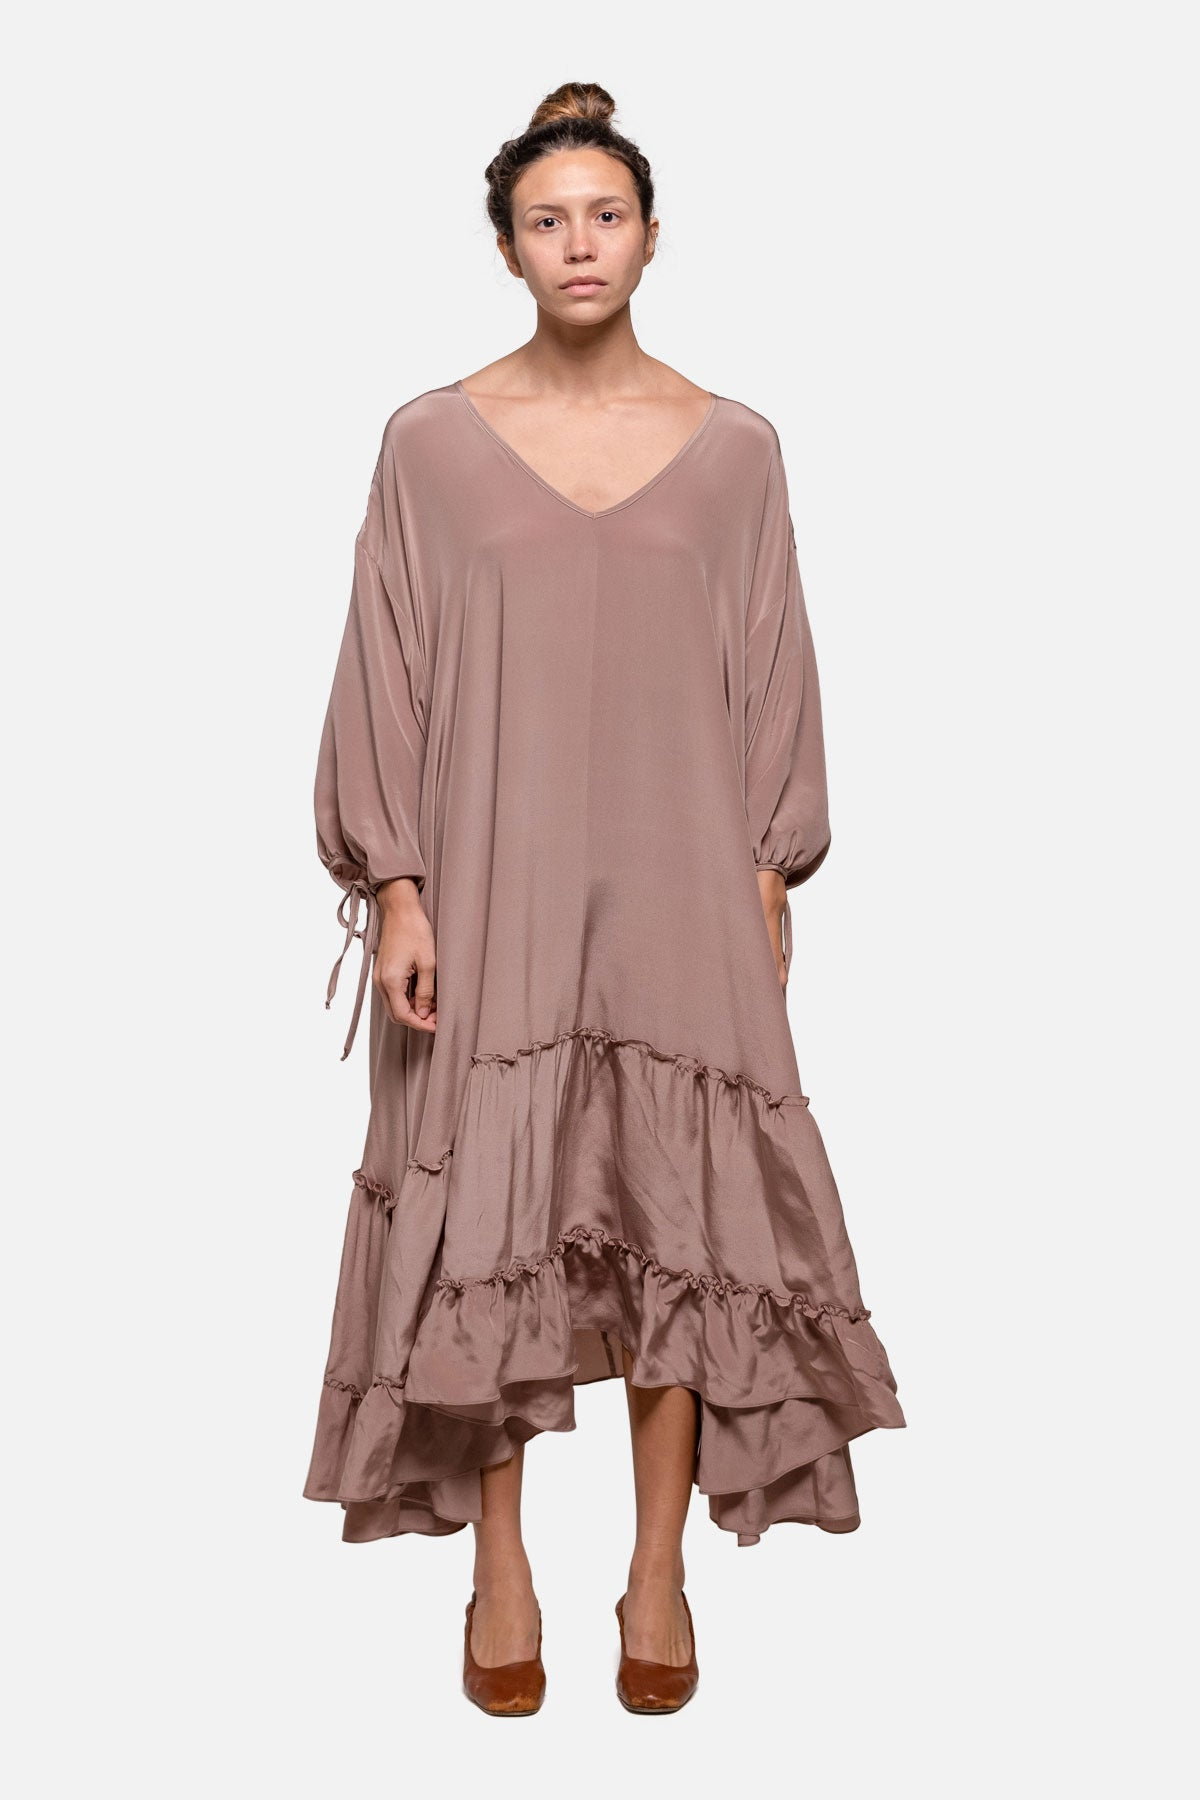 AWAY DRESS - MAUVE SILK - Fortune Goods